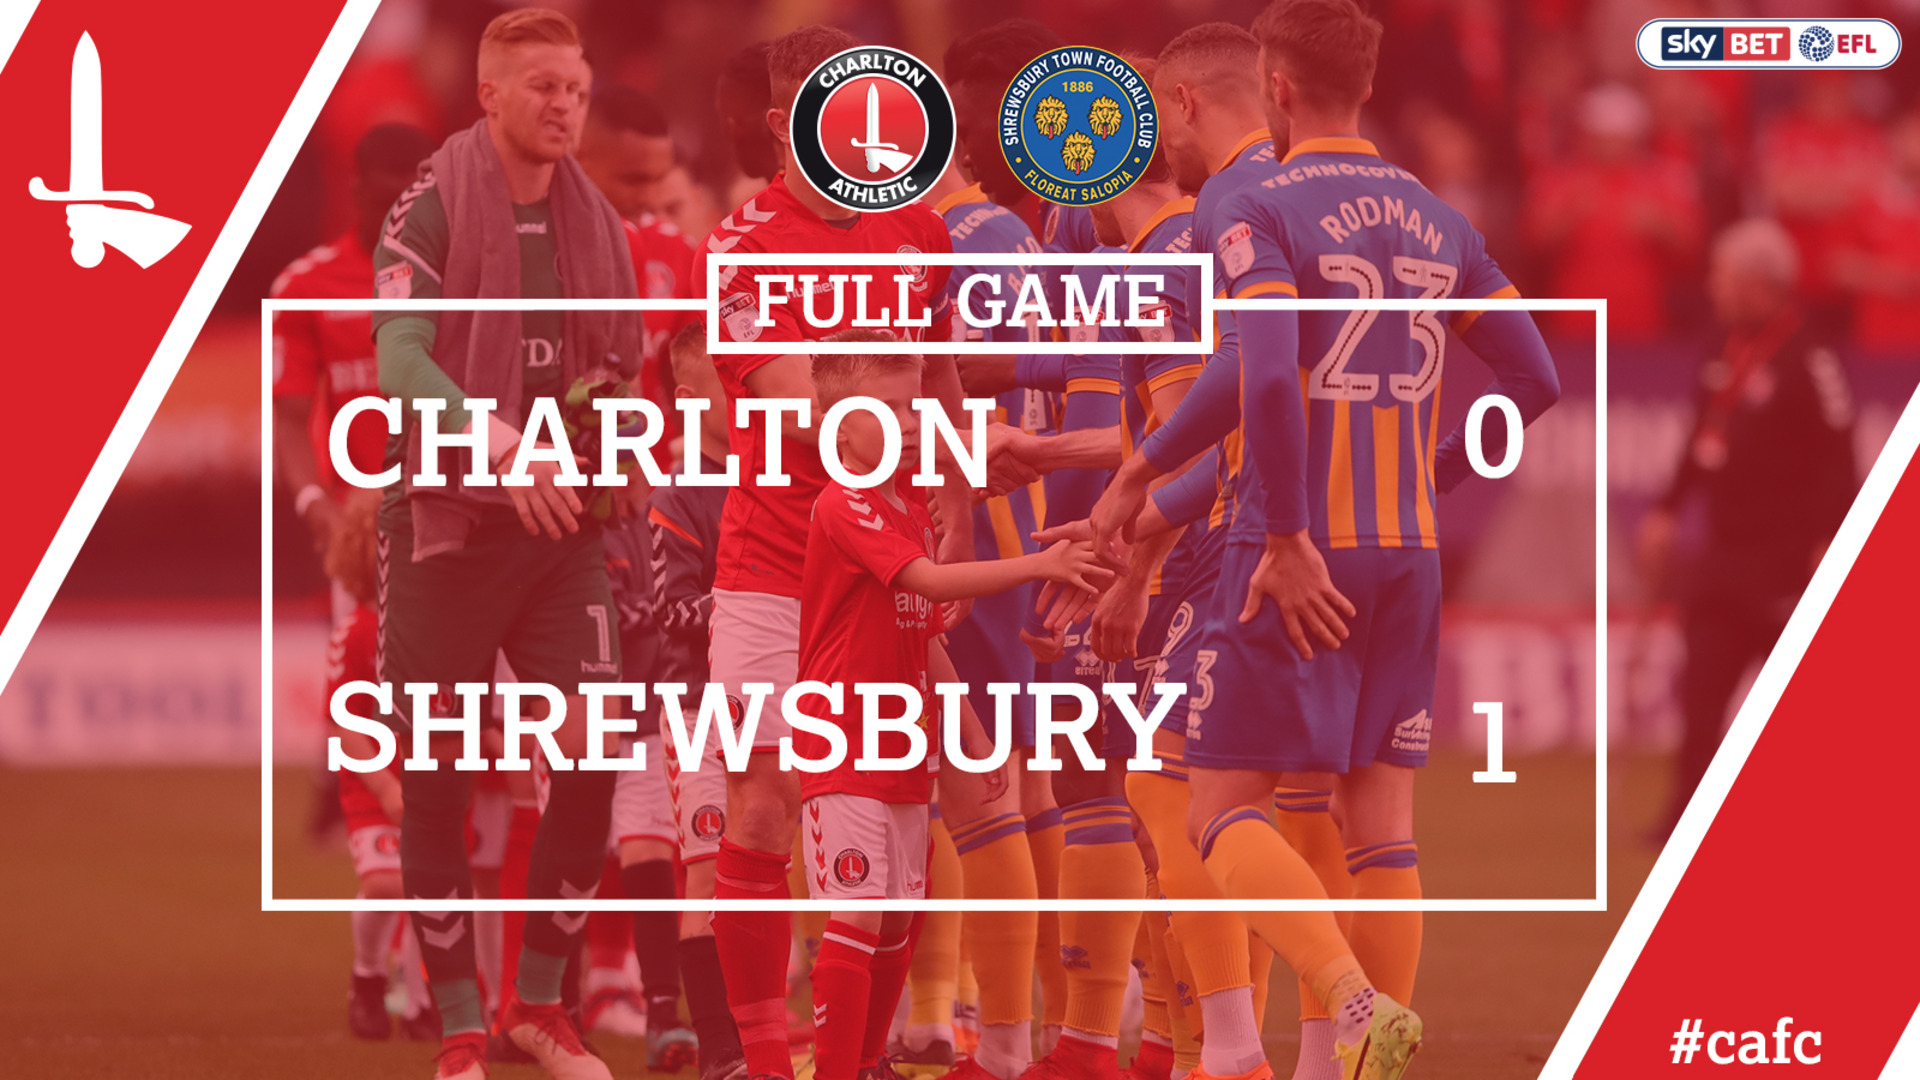 FULL GAME | Charlton 0 Shrewsbury 1 (May 2018)